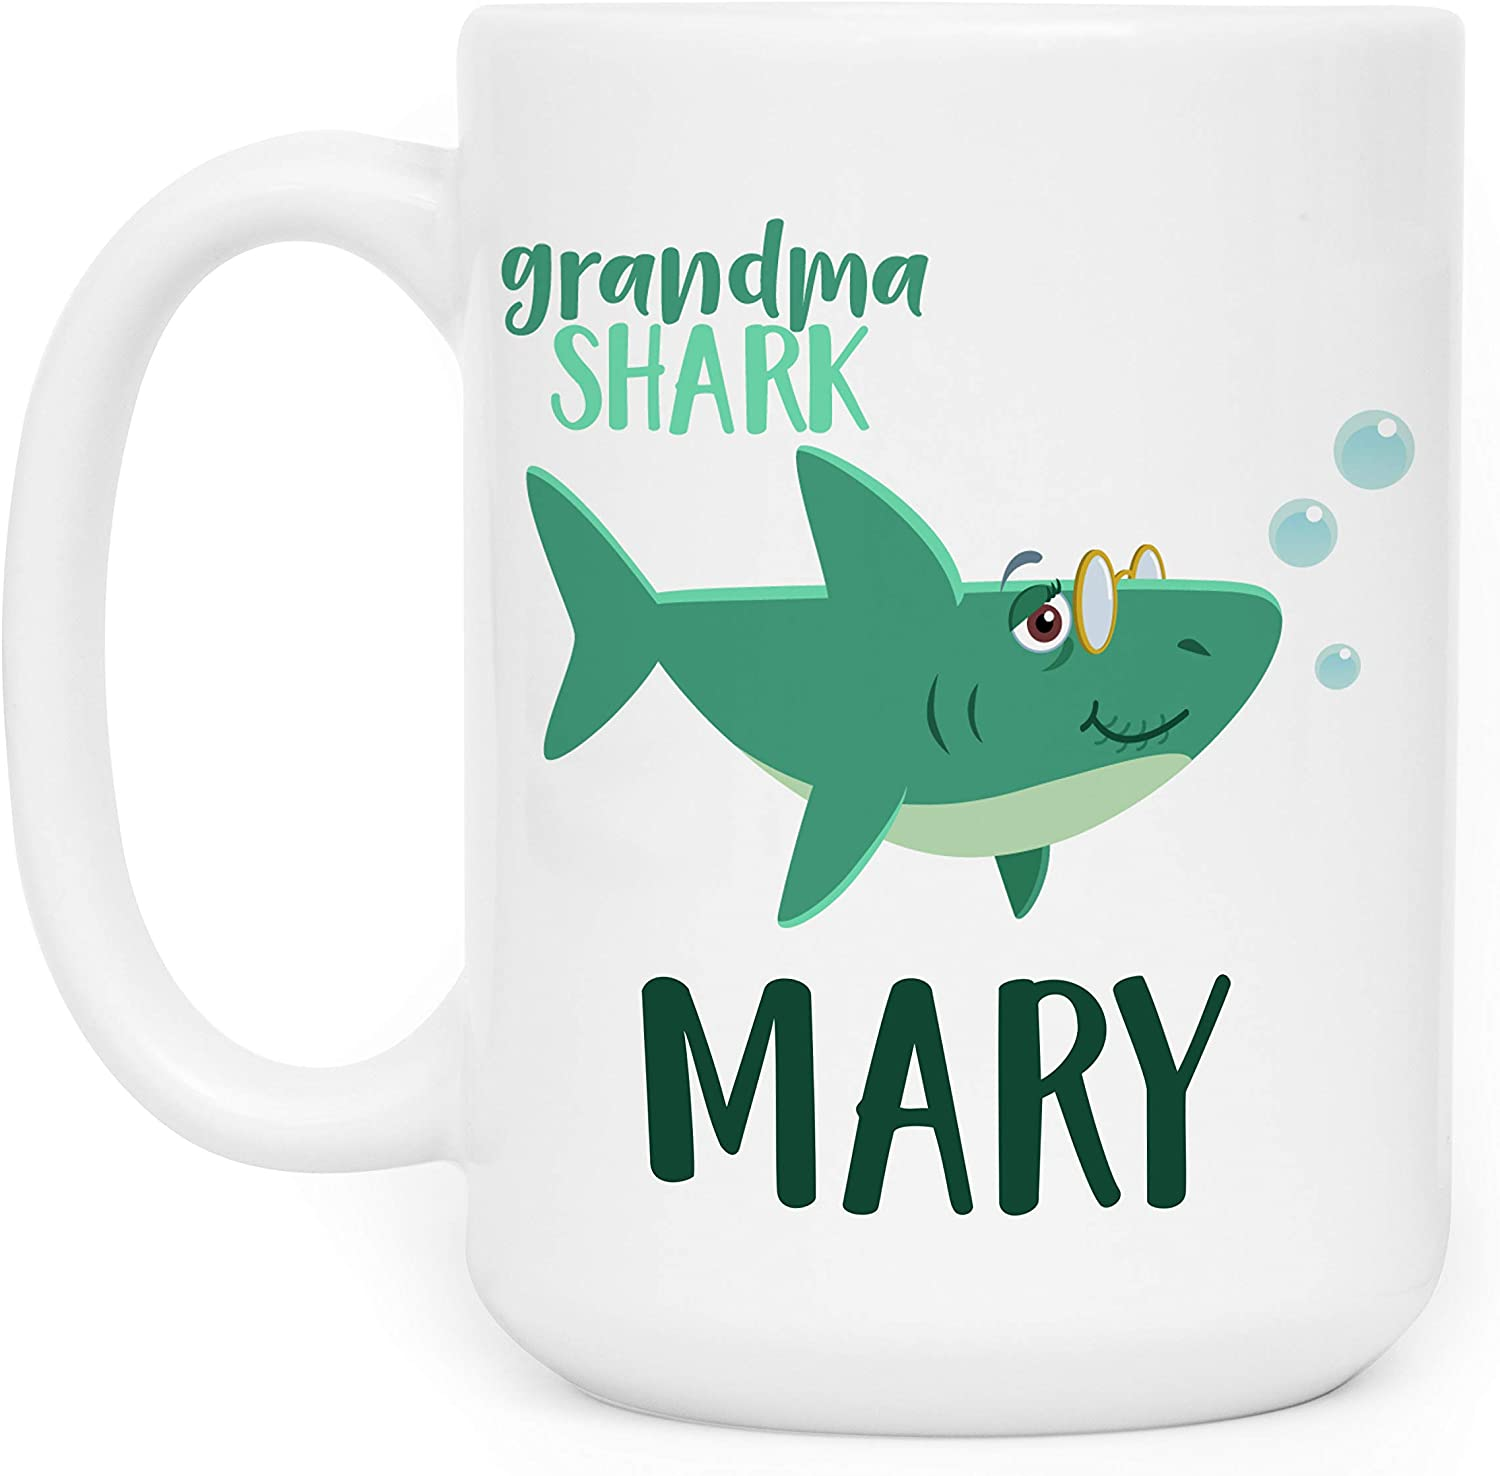 Grandma Shark, Personalized Coffee Mug with Name, Shark Family Gifts, 15 oz - Birthday Gifts for Grandma from Grandson Granddaughter, Mothers Day Gifts, Christmas Gifts, Gift for Grandma - Doo Doo